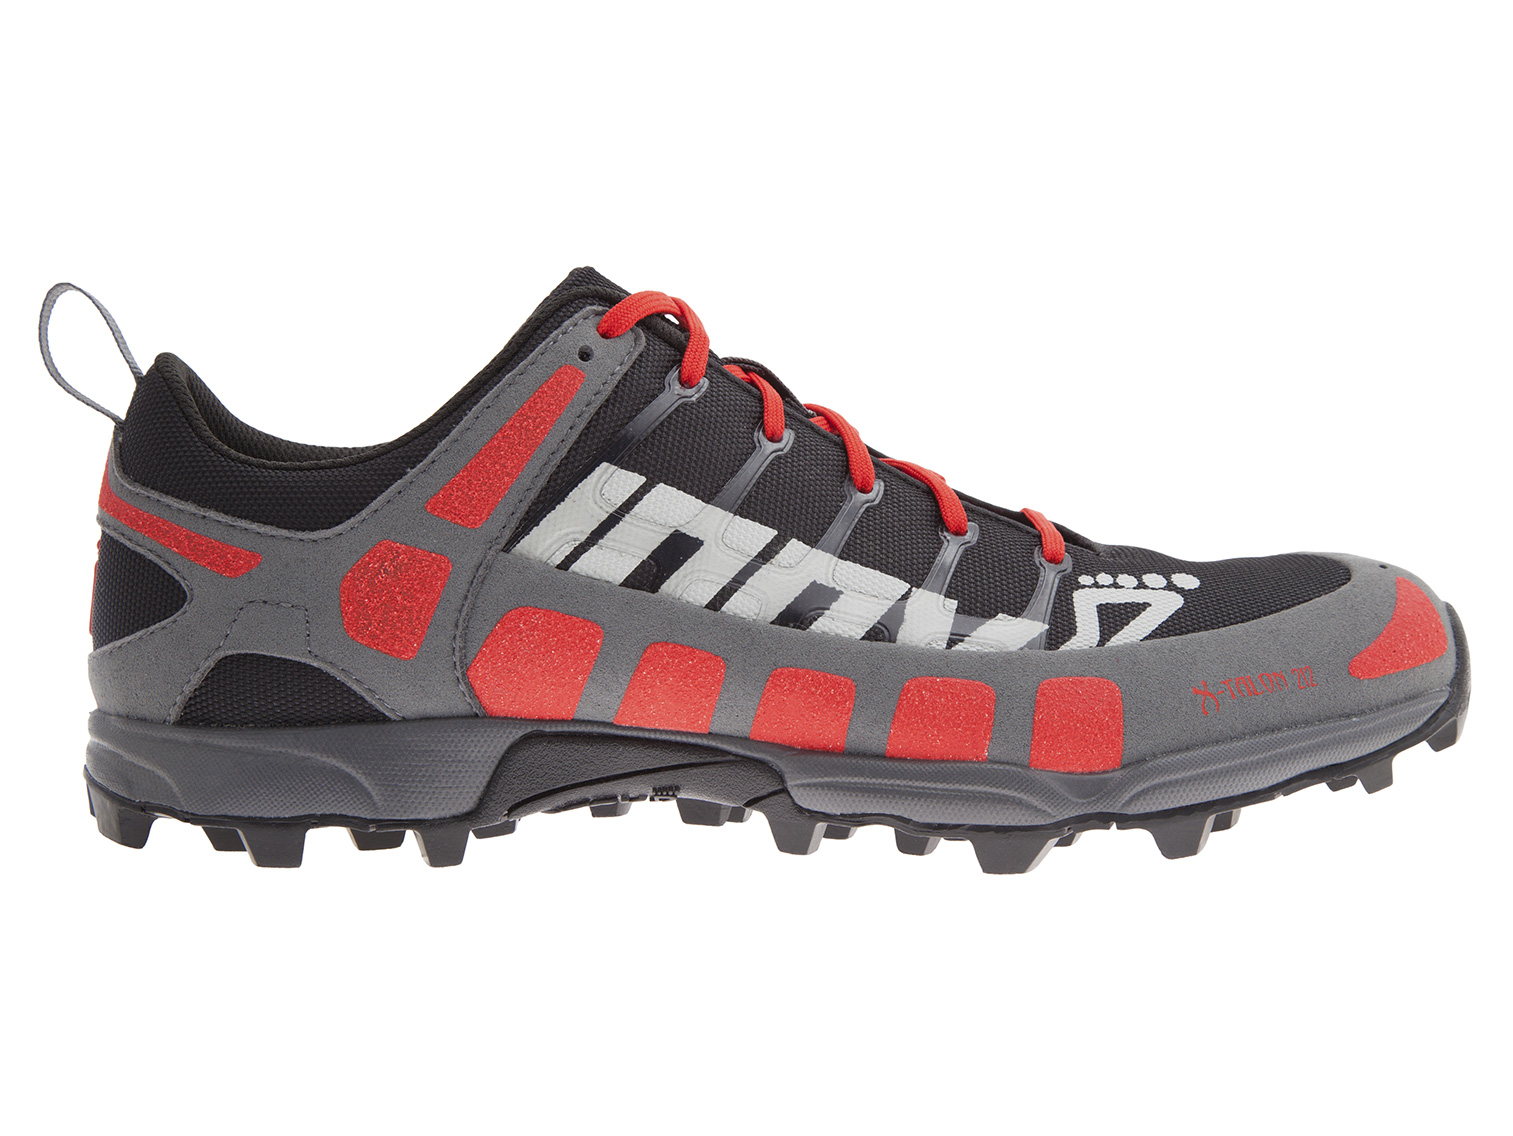 Inov 8 X-Talon 212 Running Shoe - Black/Red/Grey - M7/W8.5